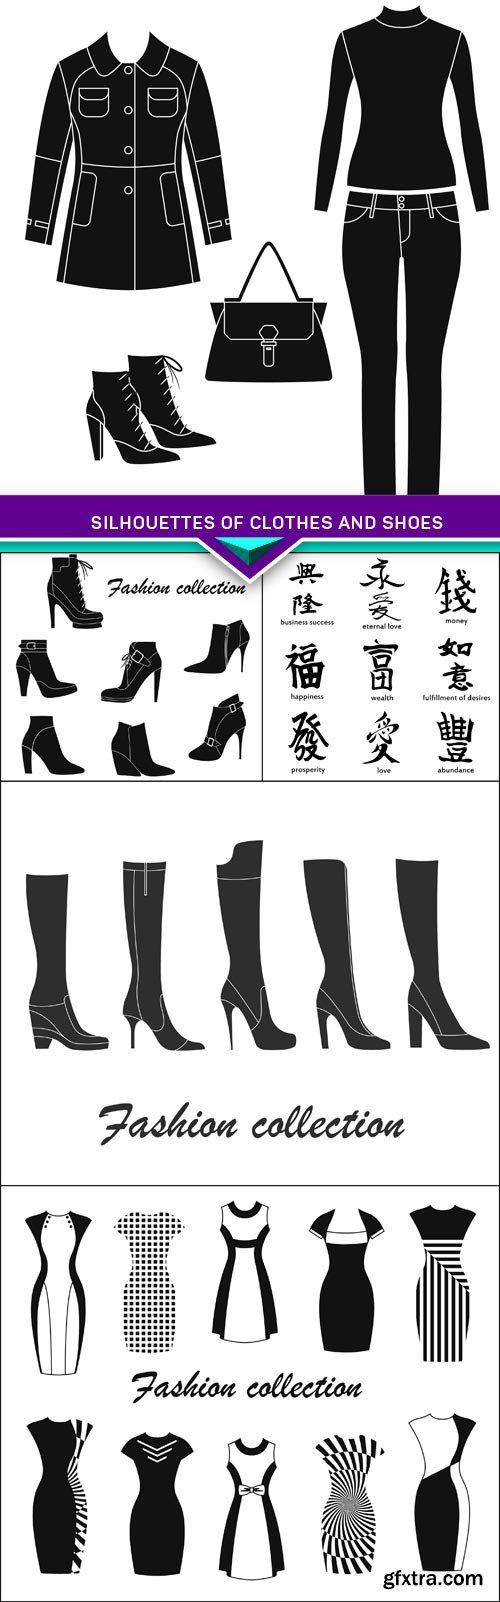 Silhouettes of clothes and shoes 5X EPS